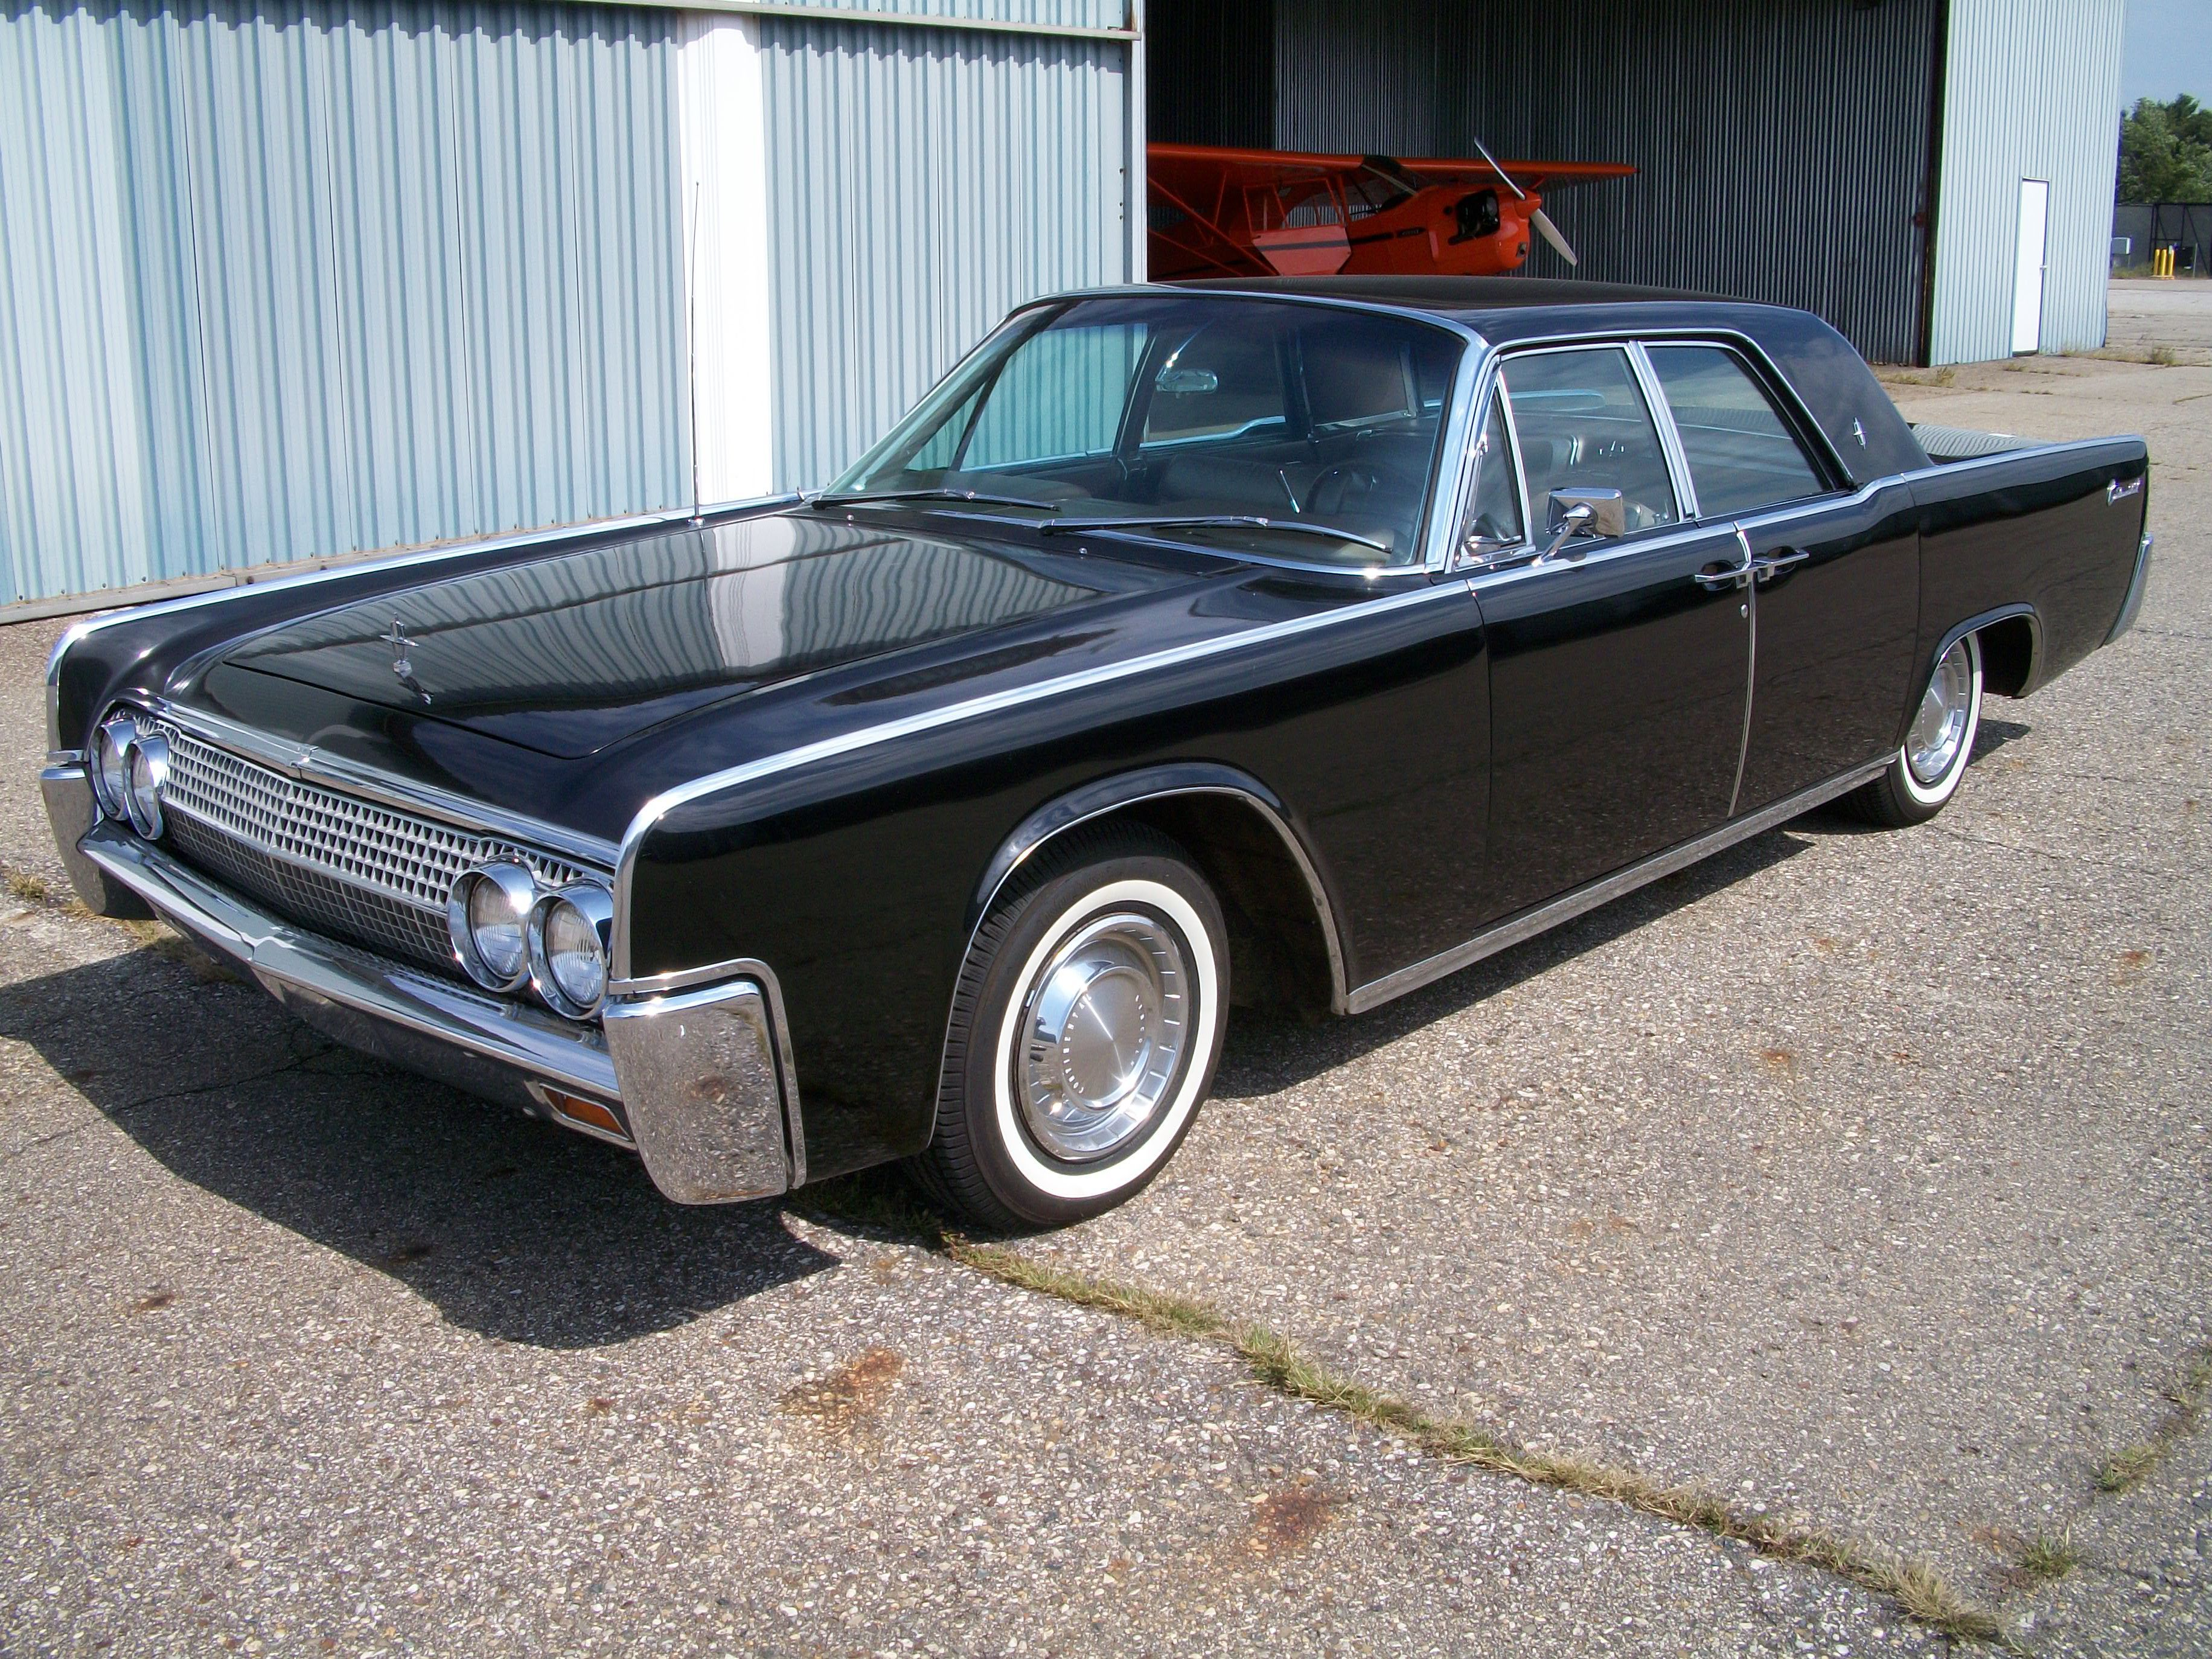 73752d5f51404b85fc53267b4d63d3fd Fascinating Lincoln Continental Used In Hit and Run Cars Trend